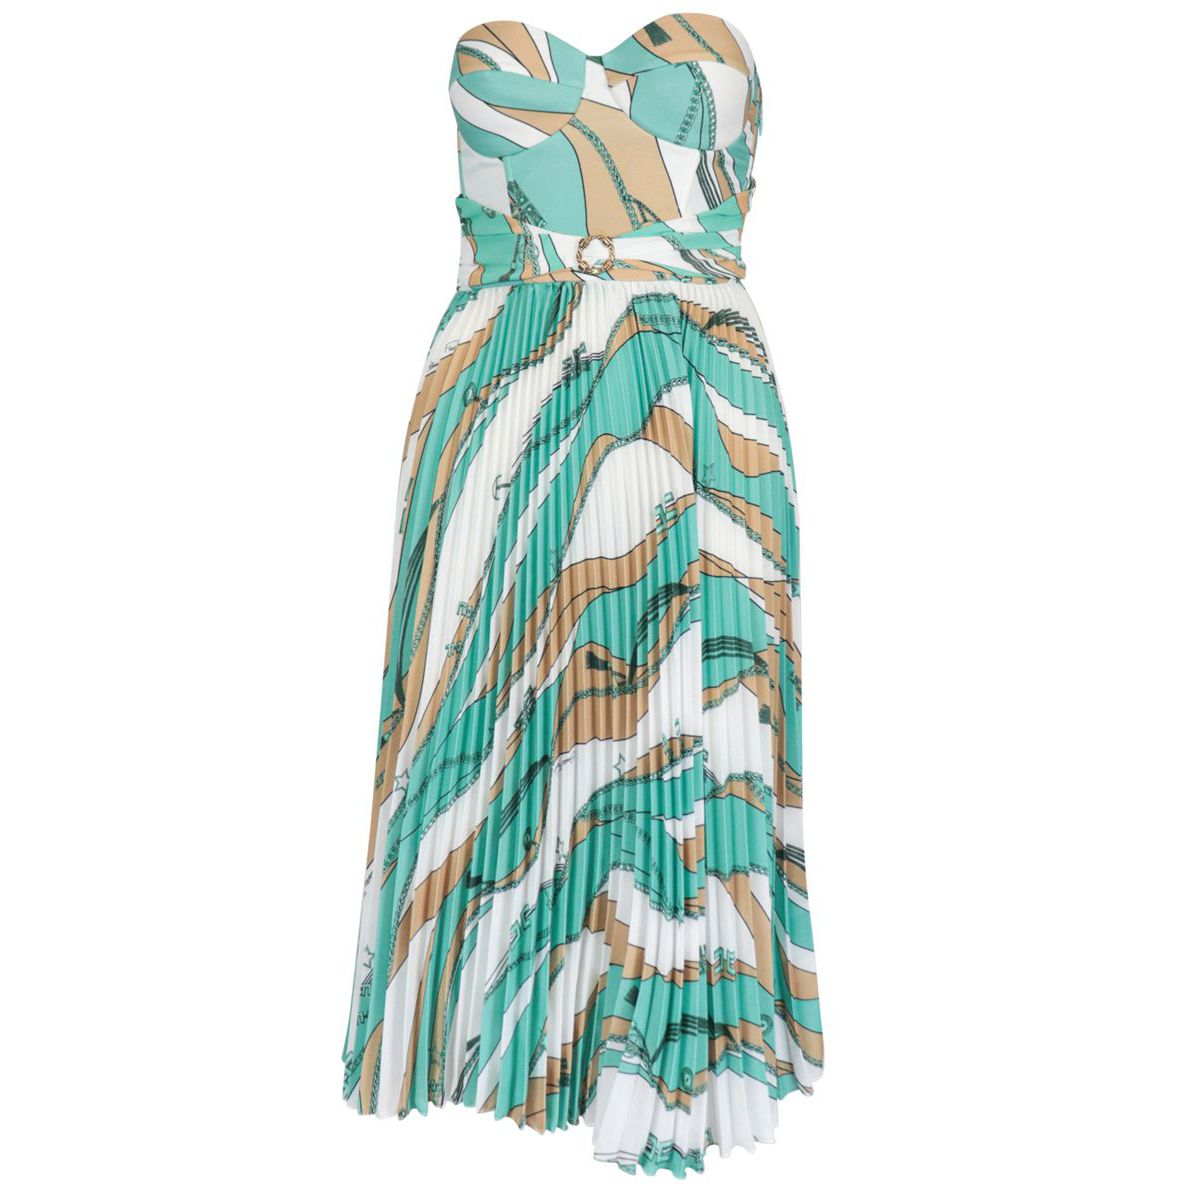 Pleated crepe dress with foulard print Verdeacqua / camm Elisabetta Franchi